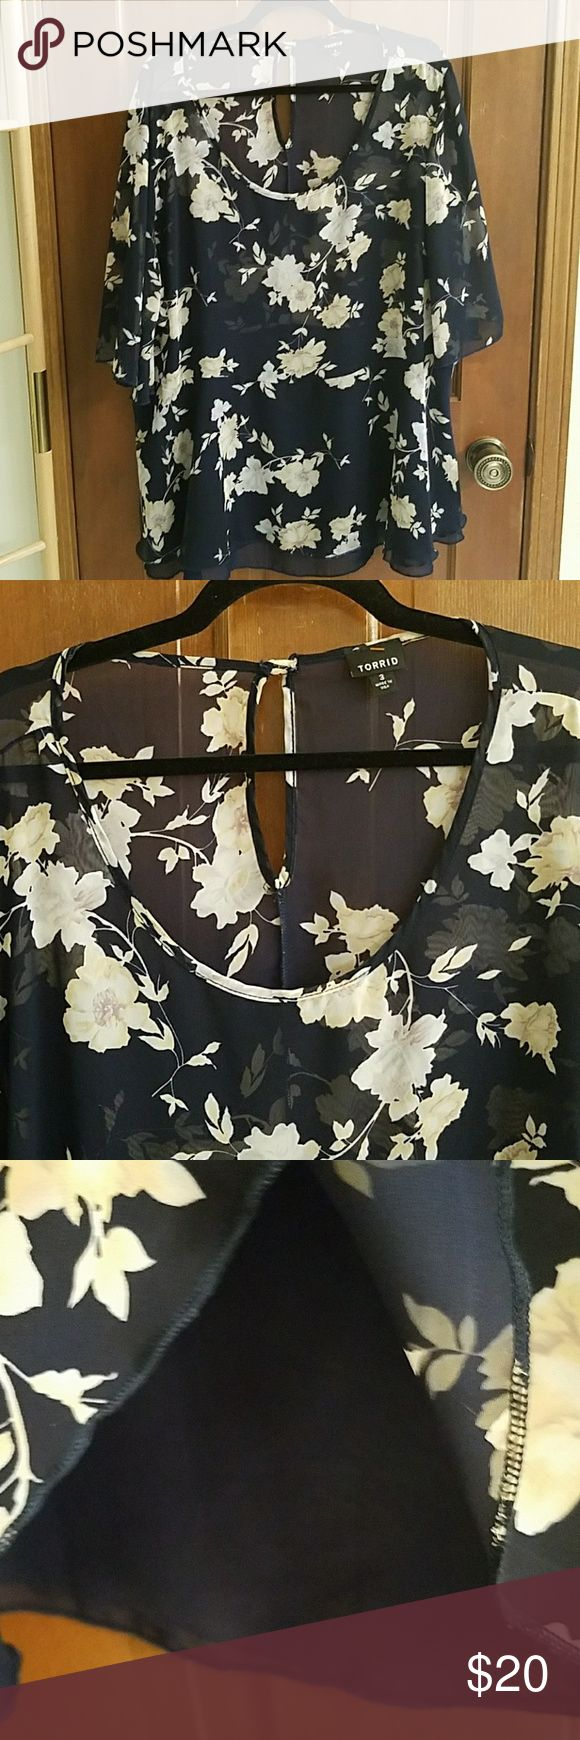 Torrid tunic, navy floral, bottom lined, EUC Navy blue with white, gray and pale peach in flowers. A-line shape. Sheer fabric upper portion with short bell sleeves, keyhole and button in back. Attached lower portion lined, solid lining peaks out at bottom. Torrid size 3 (3X, size chart pic 8). Armpit to armpit approximately 28 inches. Approximately 30 inches long in back. 100% polyester. Color seen best pic 3. Excellent used condition without defects. Torrid Tops Tunics